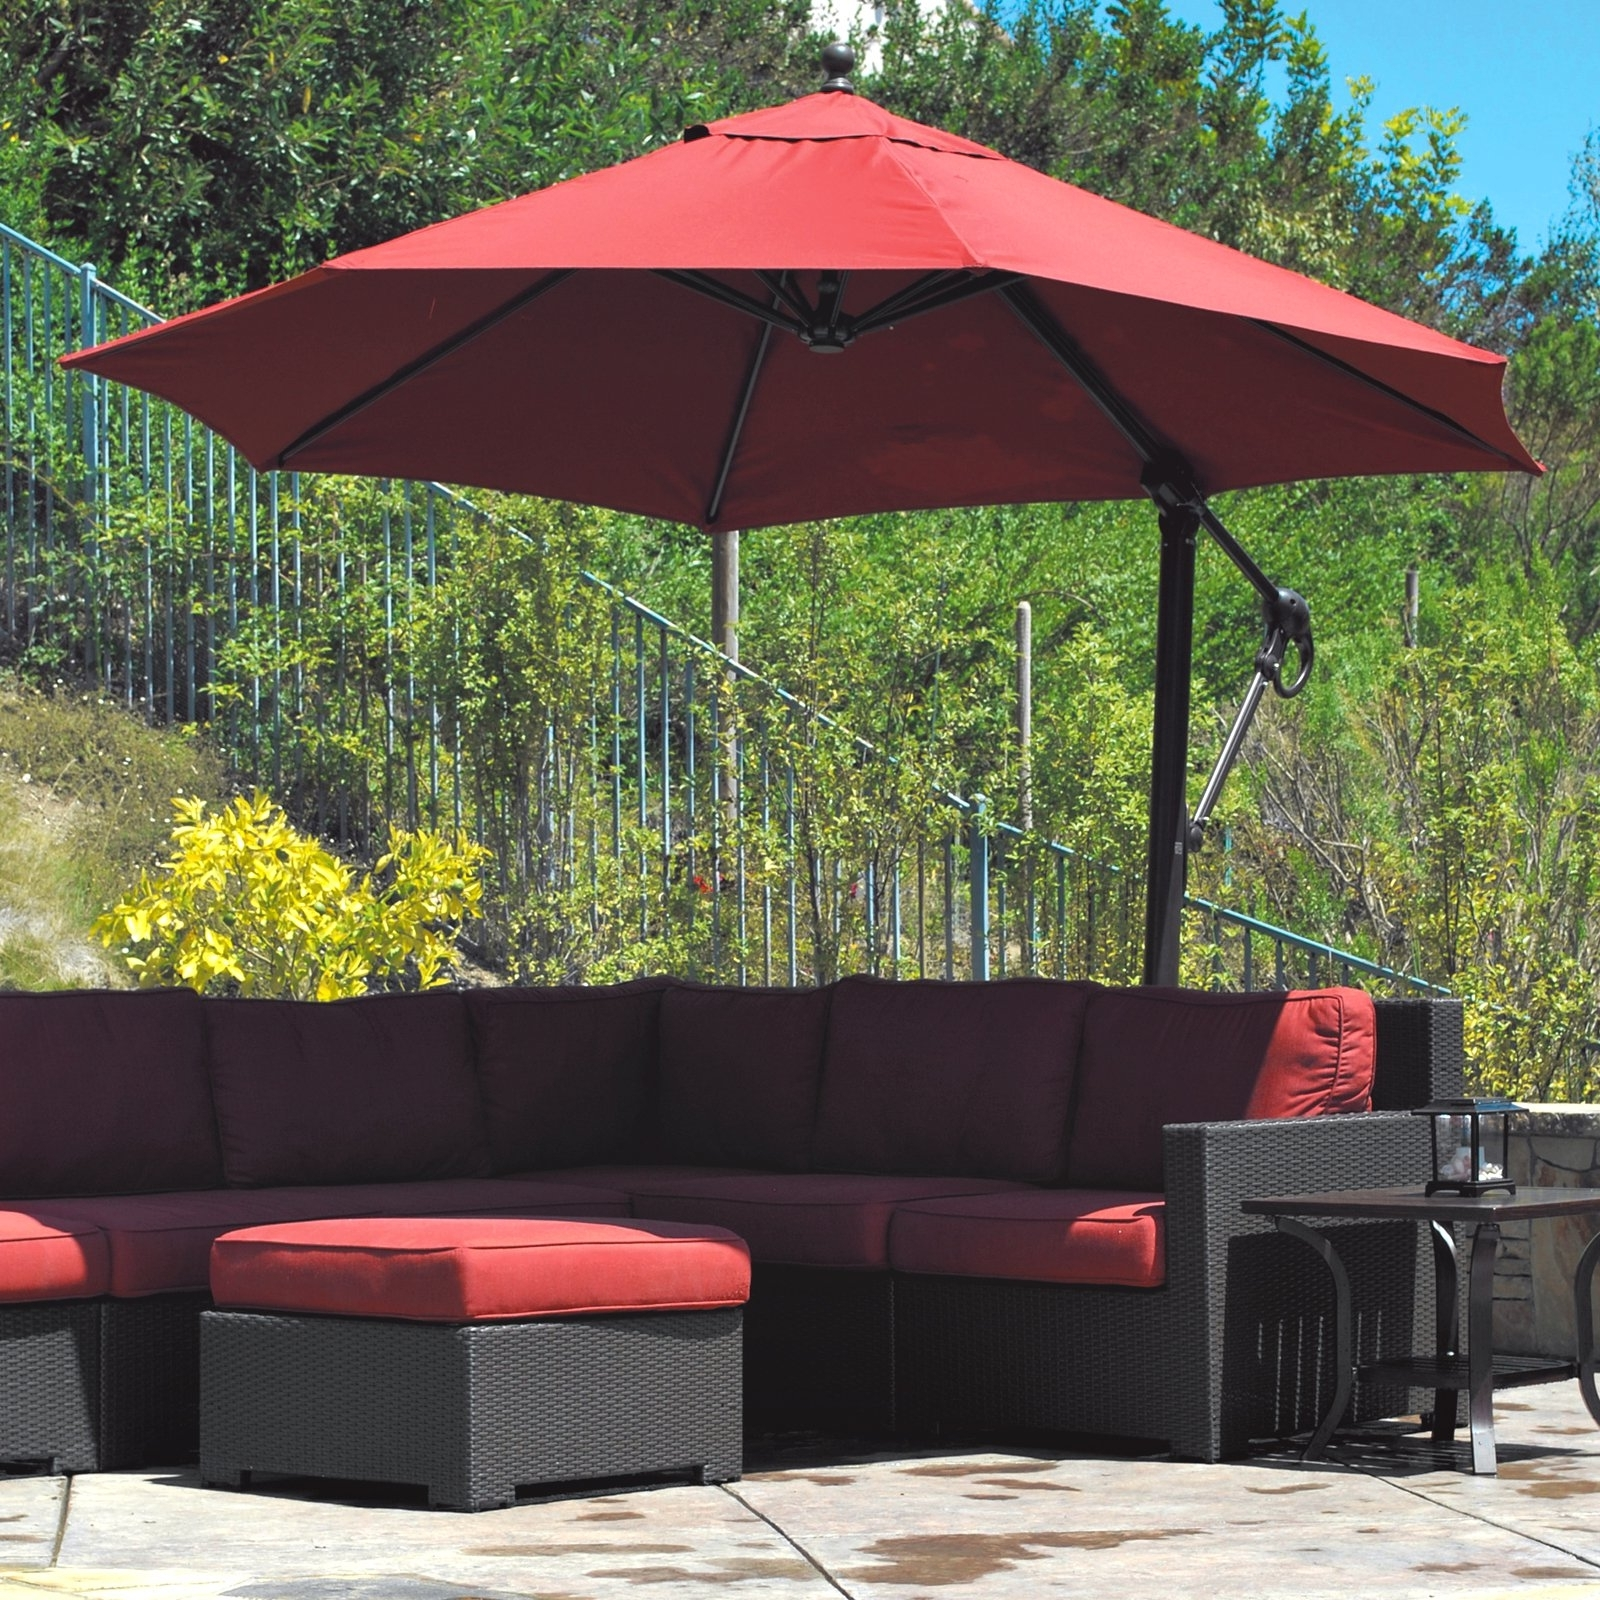 Most Up To Date Offset Patio Umbrella For Shade From Sun – Decorifusta Inside Large Patio Umbrellas (View 11 of 20)